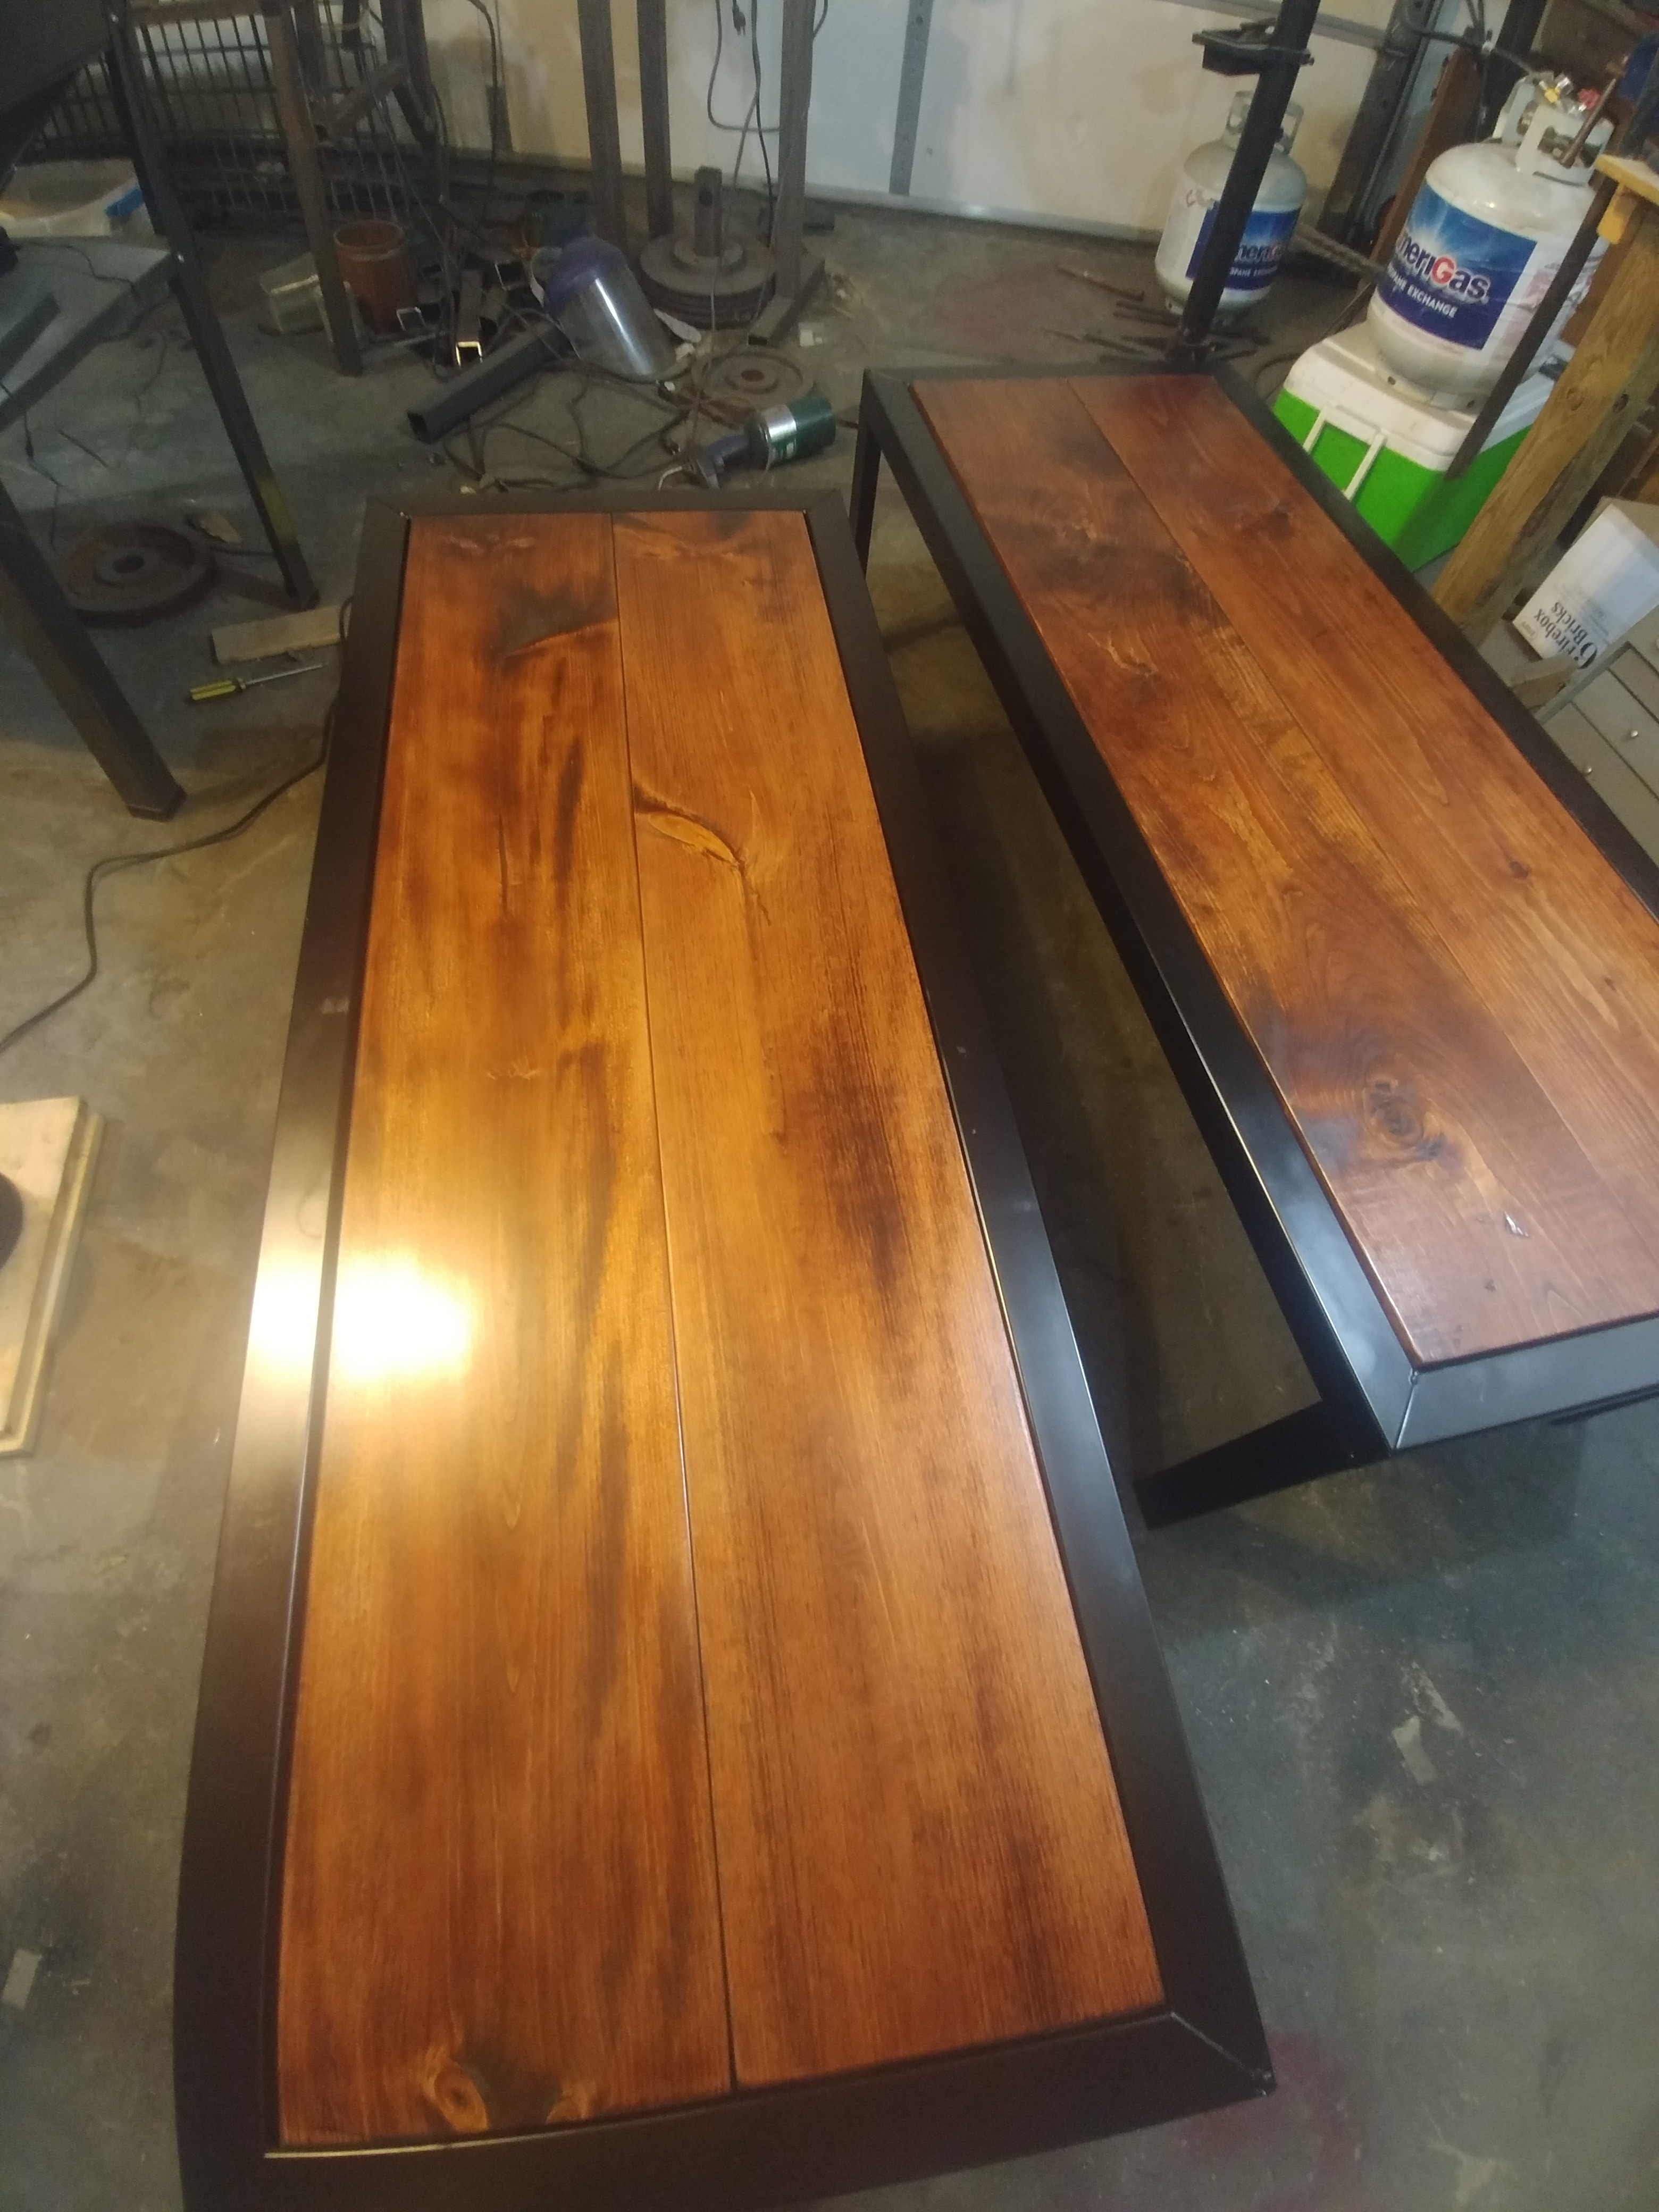 Picture of Staining Wood and Finish Painting